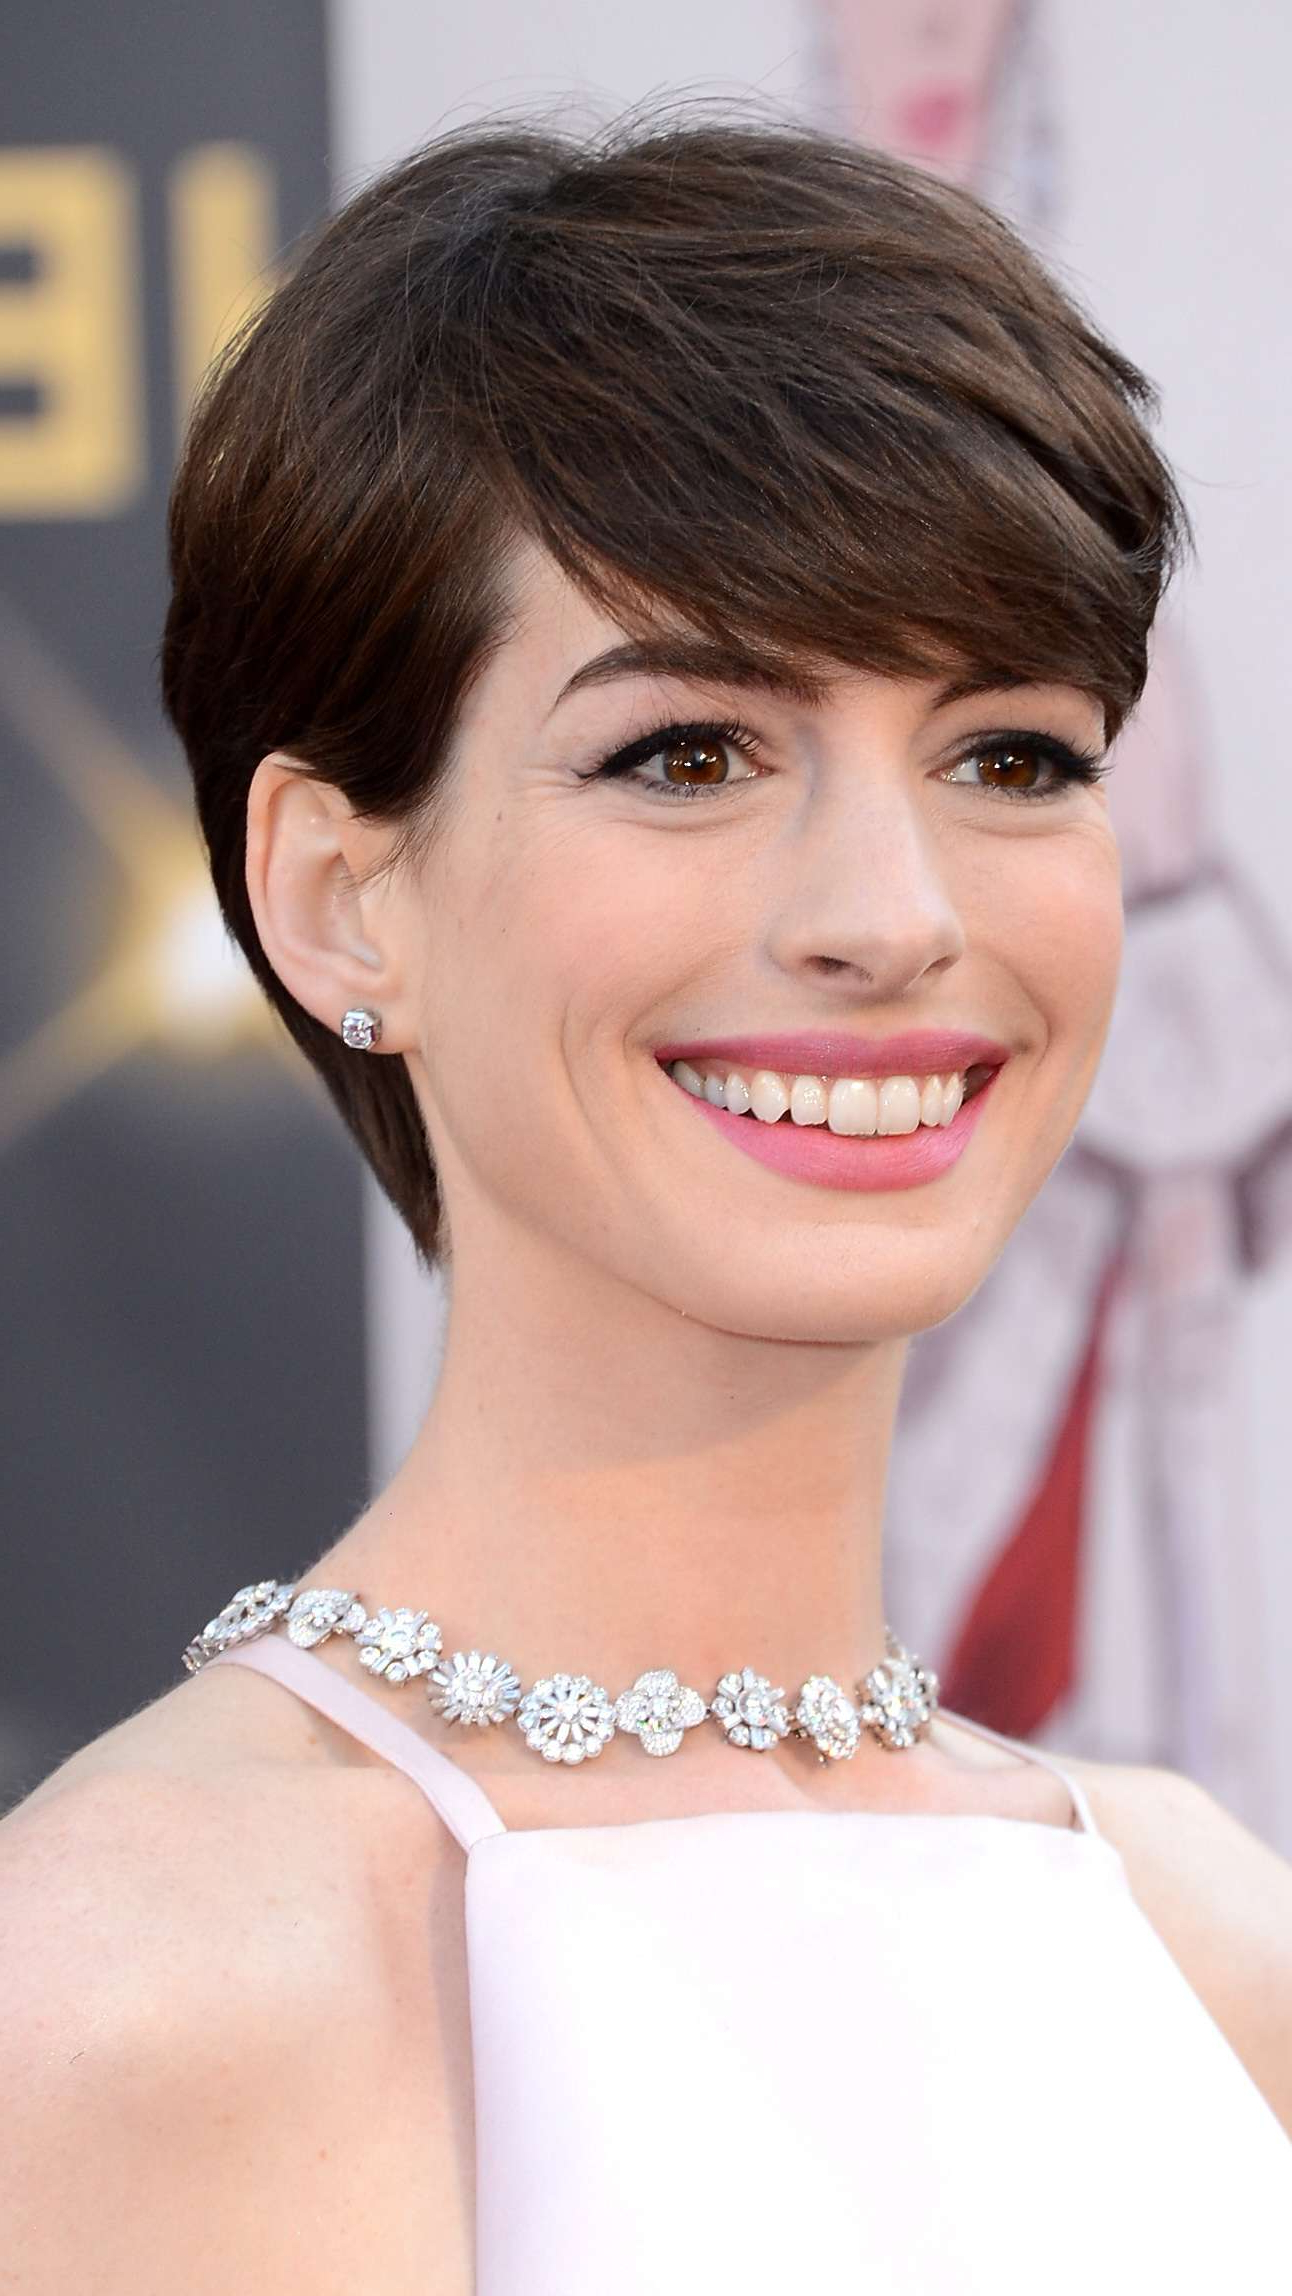 22 Inspiring Short Haircuts For Every Face Shape Regarding Short Haircuts For A Square Face Shape (View 18 of 25)